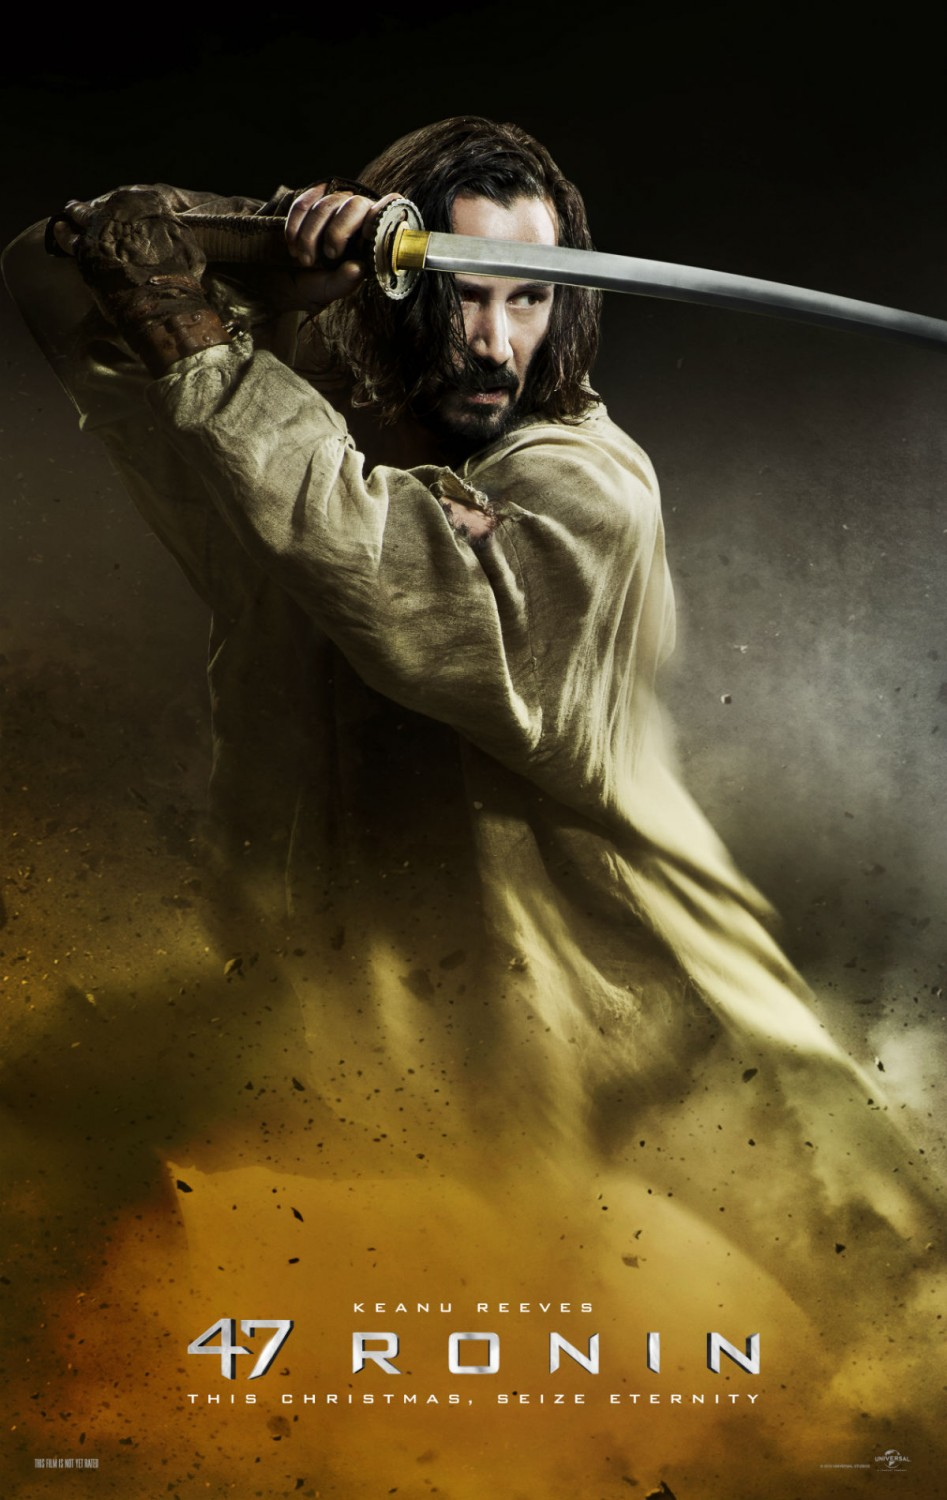 47-ronin-character-poster-reeves